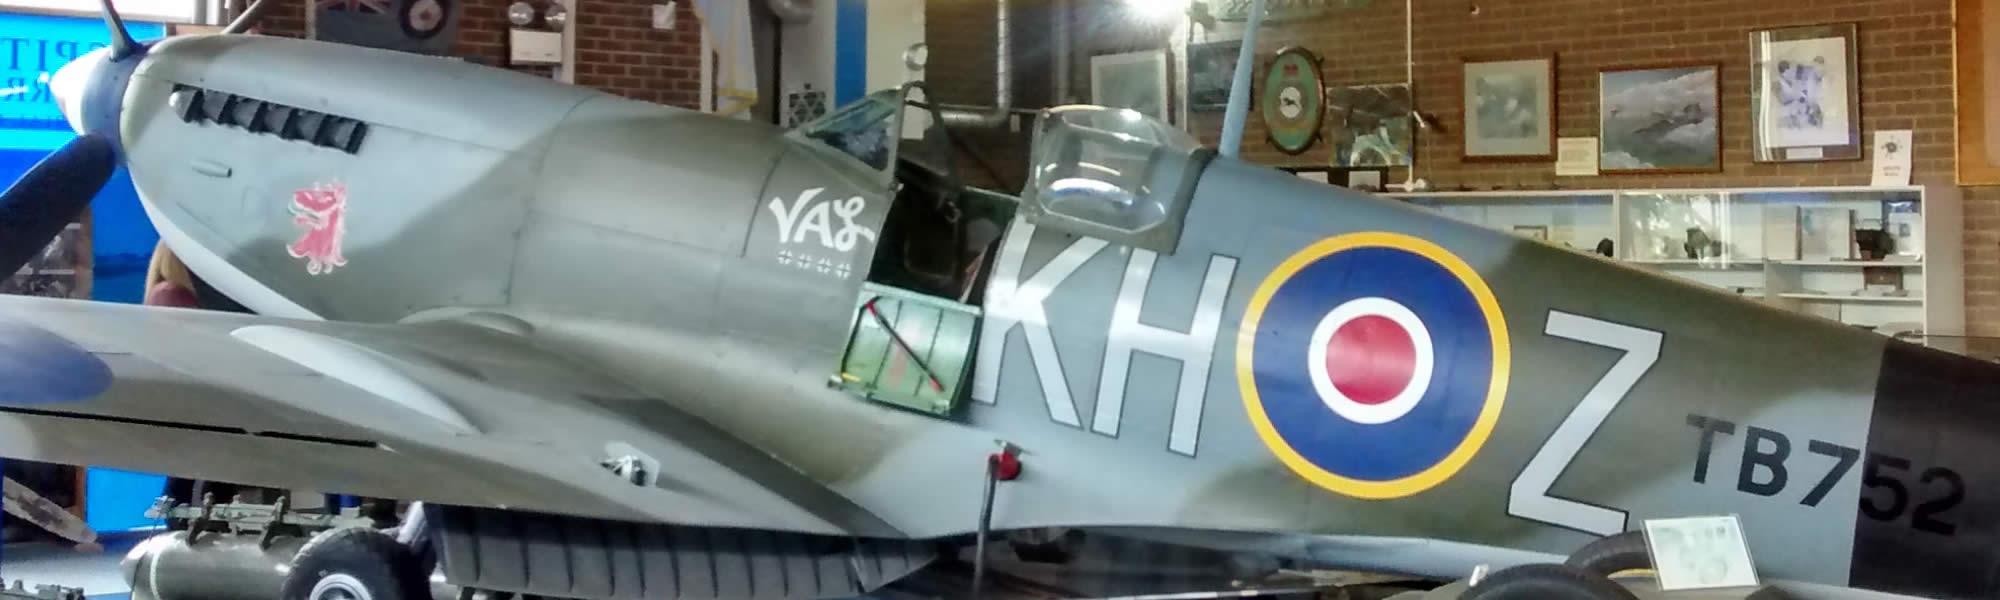 Spitfire Museum - Visit Ramsgate